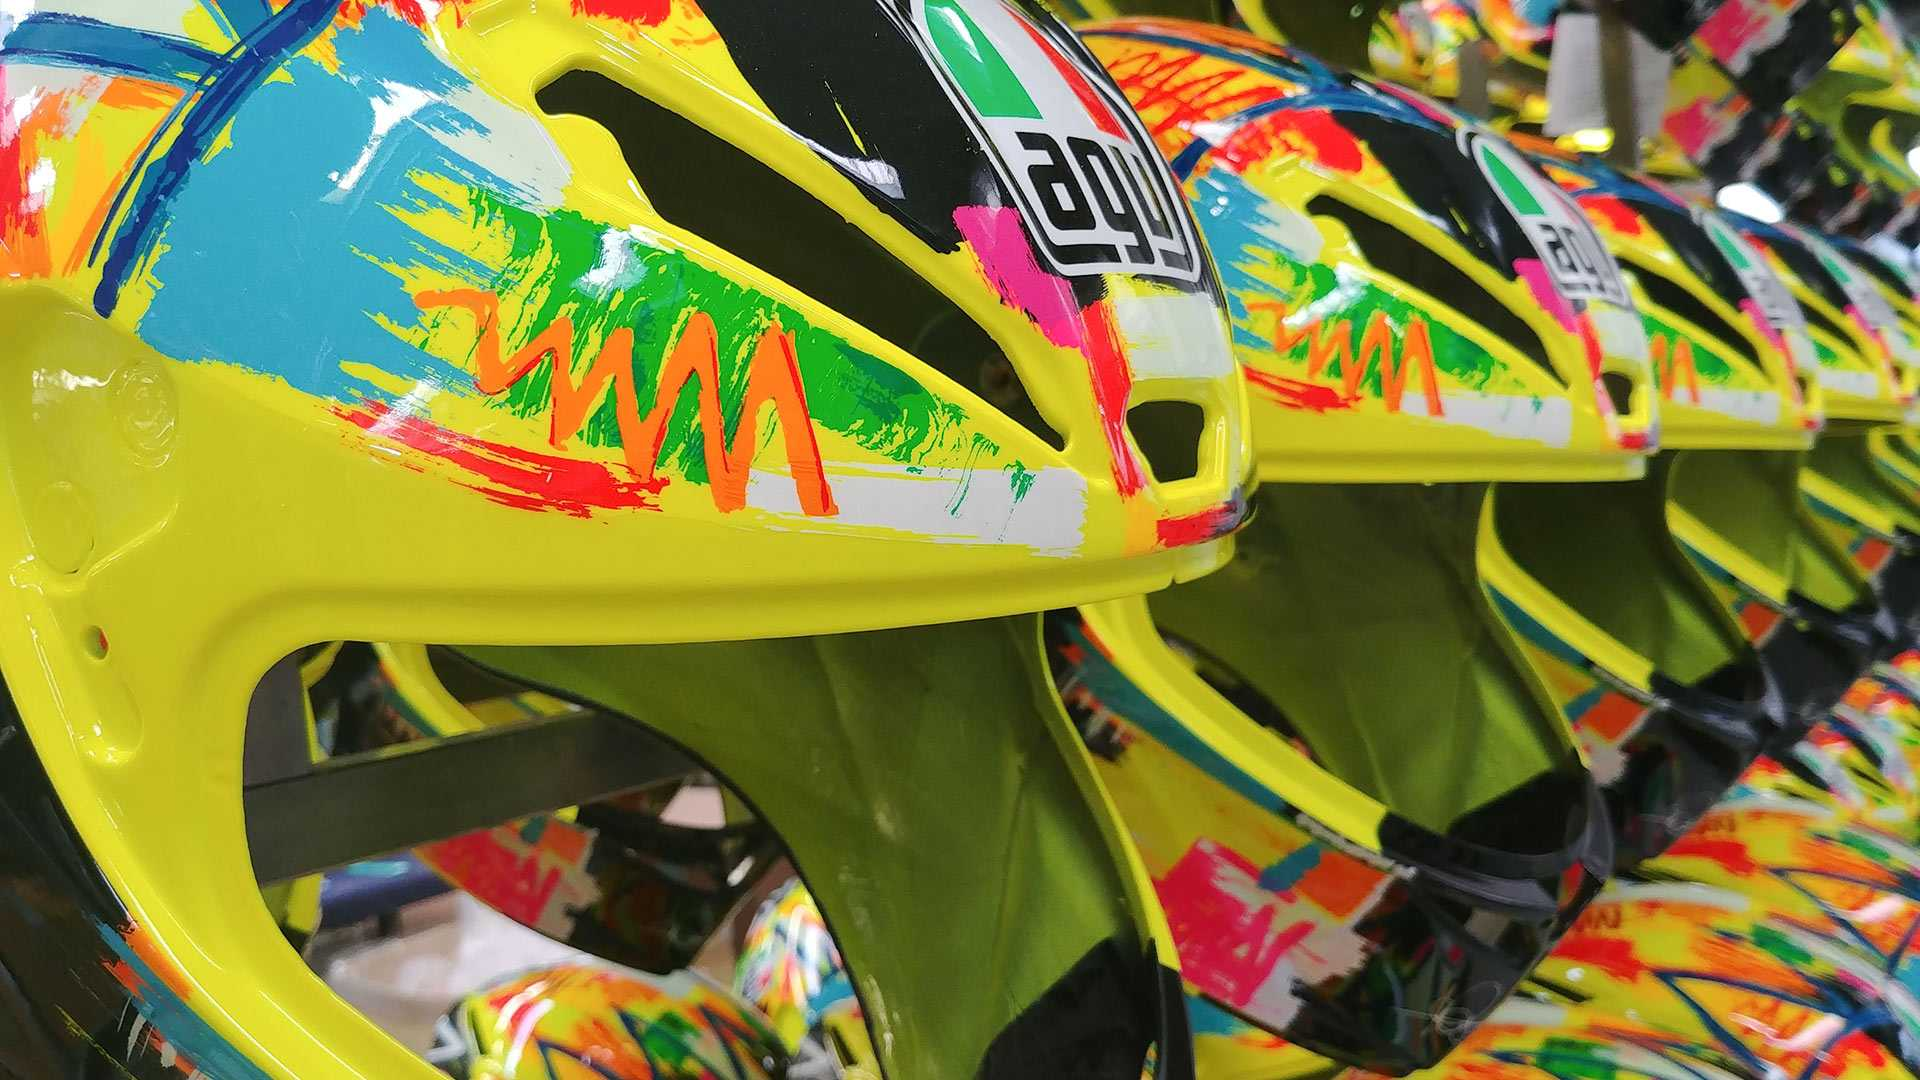 Behind The Scenes: Here's How Motorcycle Helmets Are Made